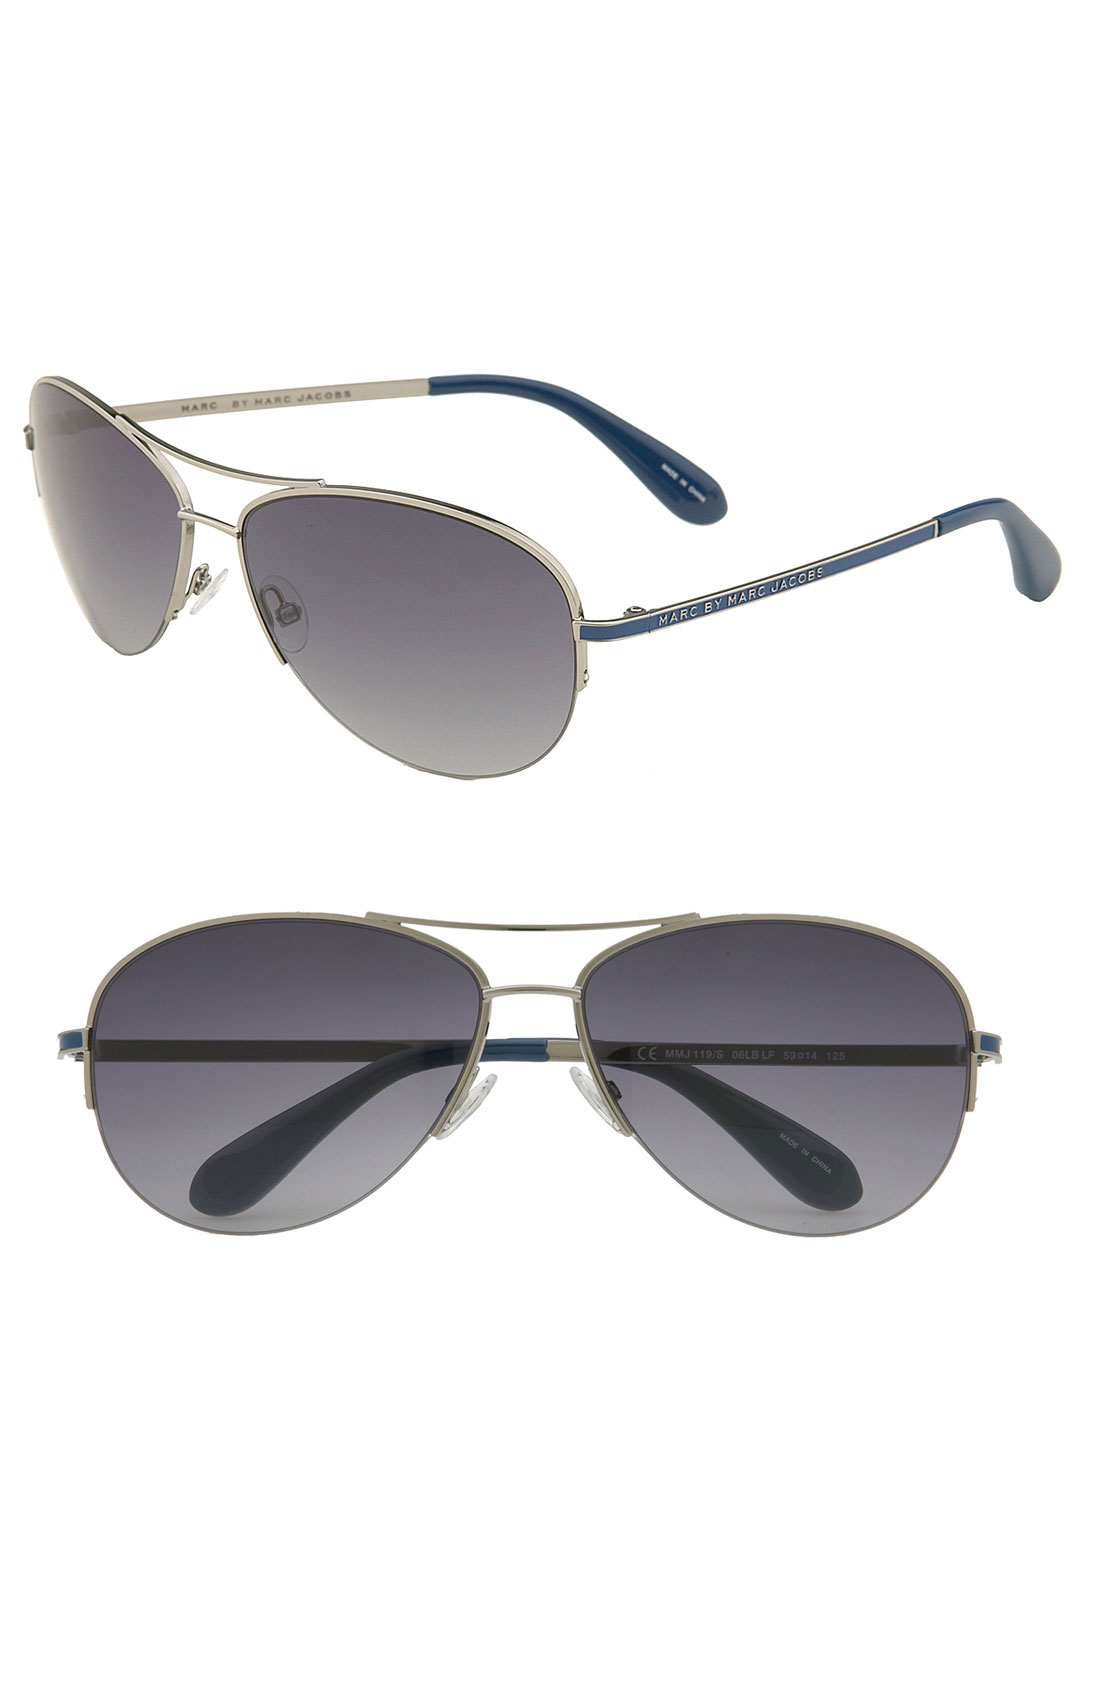 Rimless Aviator Sunglasses : Marc By Marc Jacobs Rimless Aviator Sunglasses in Blue Lyst